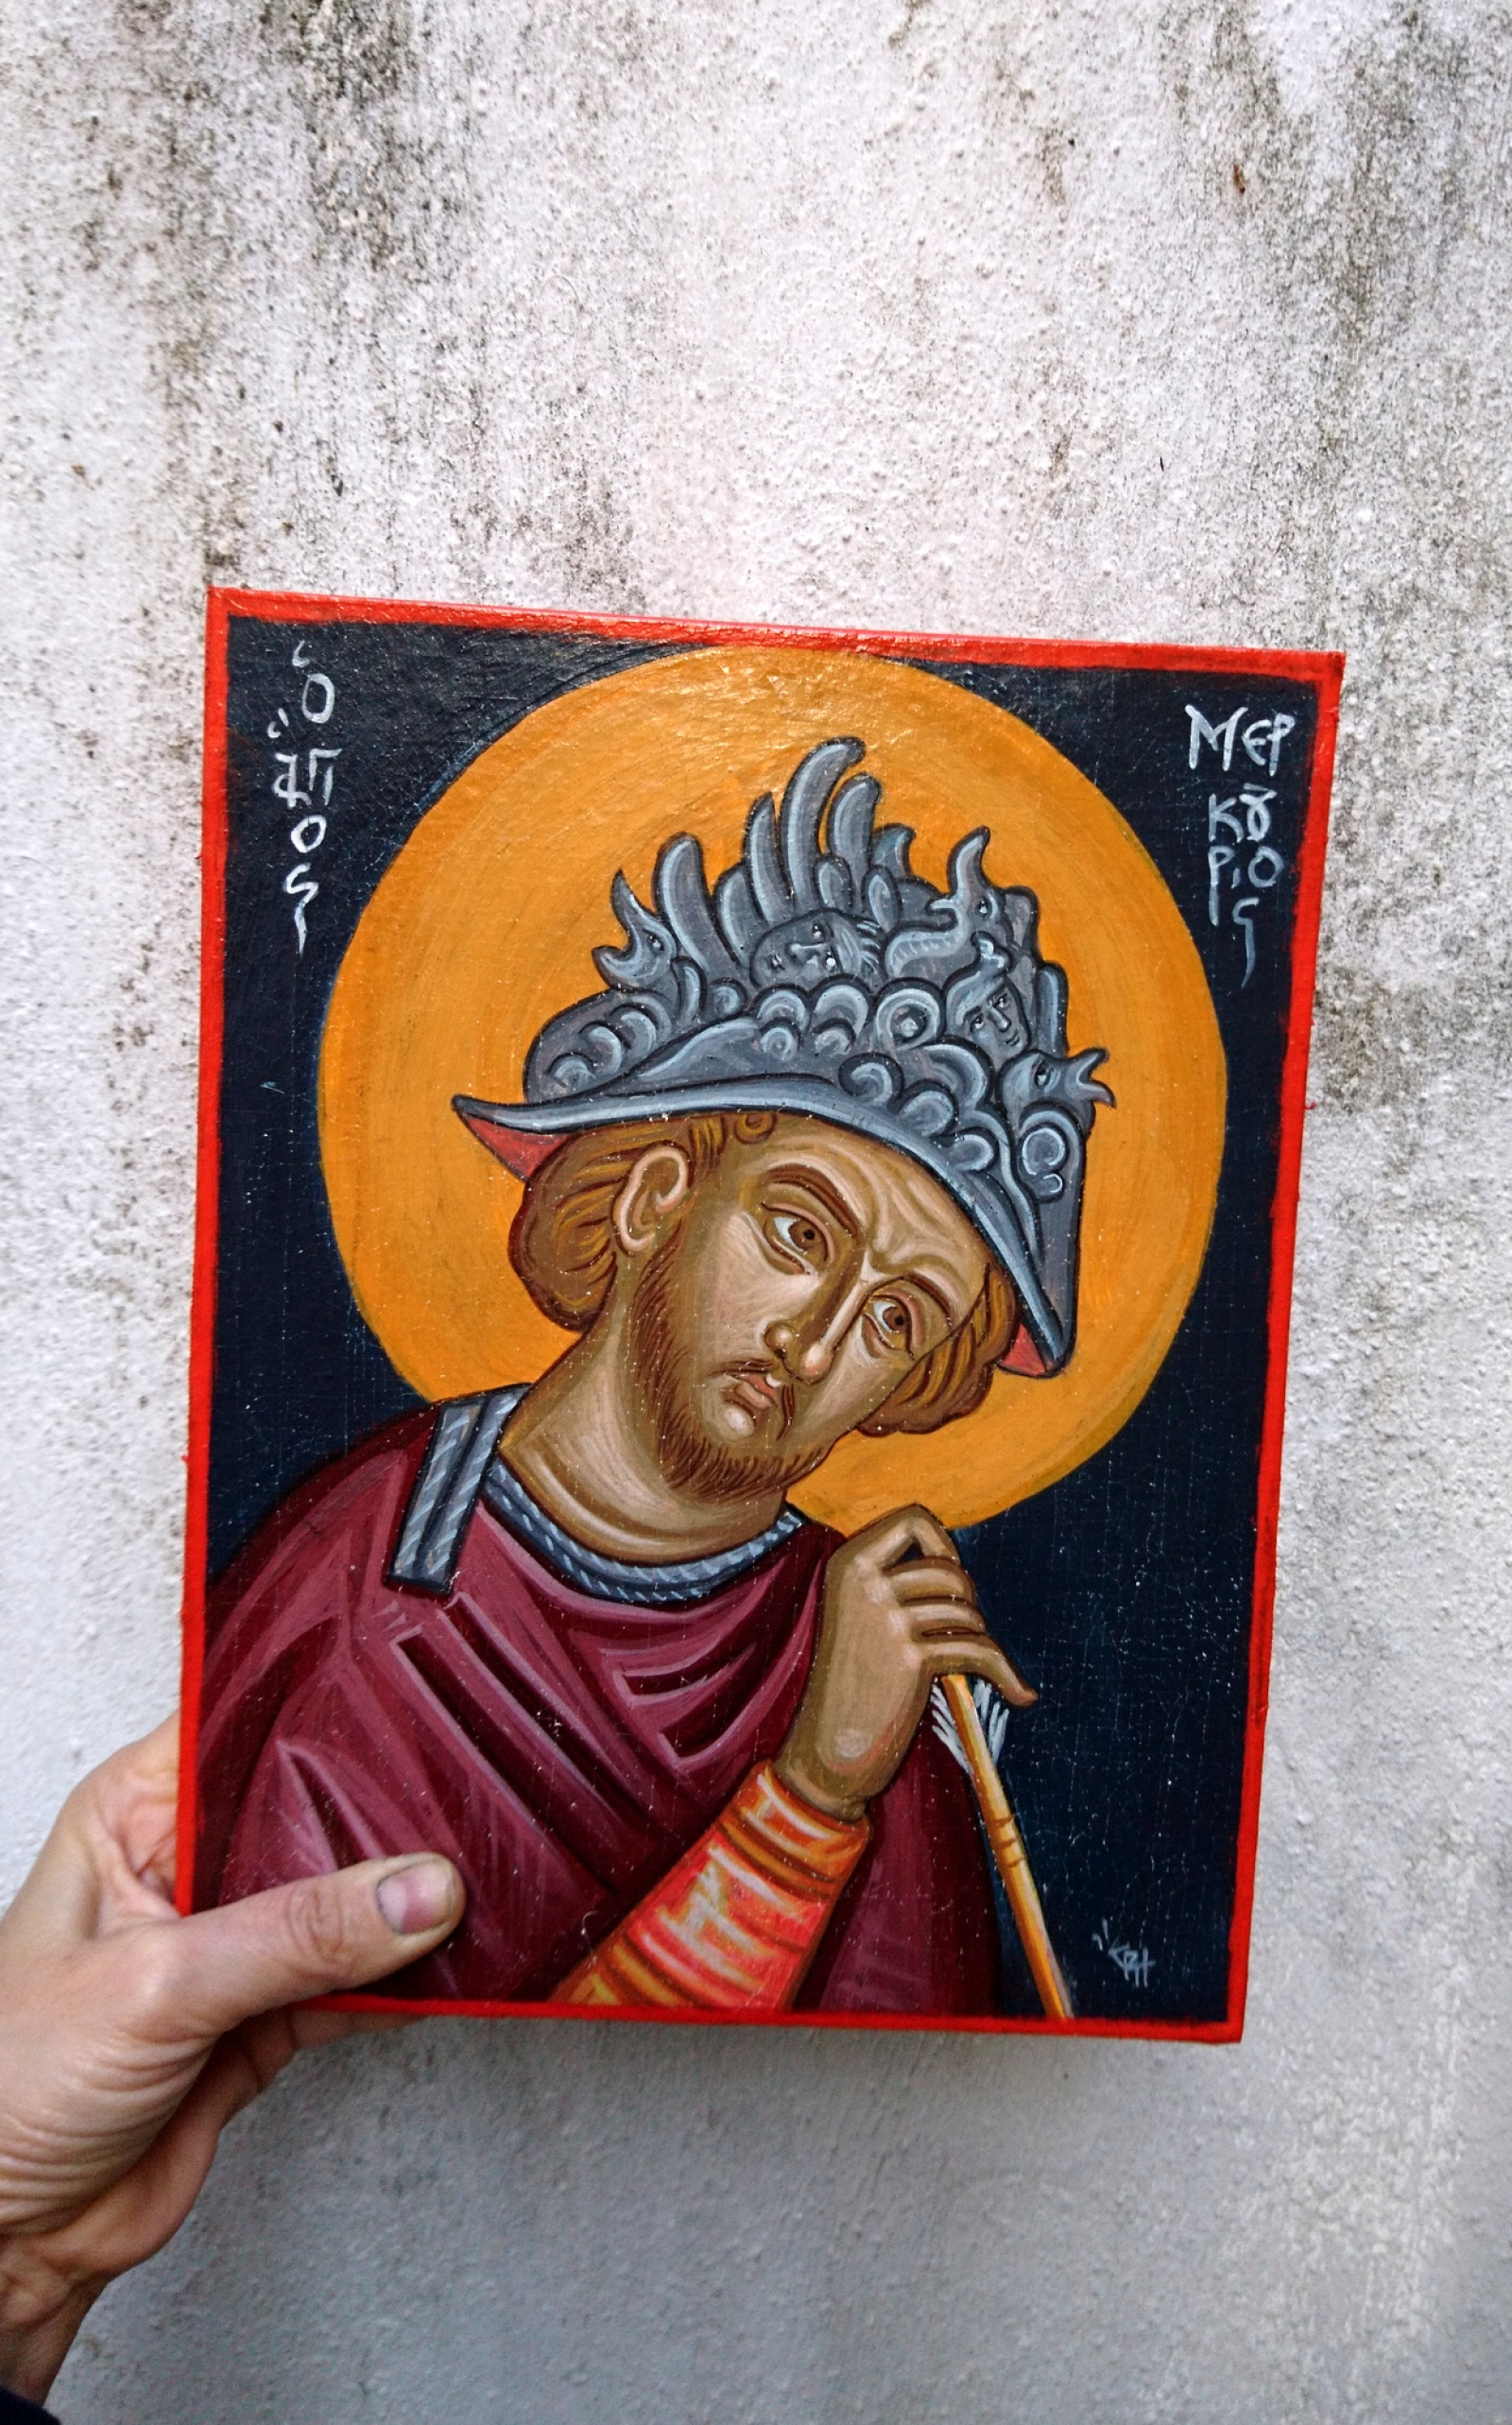 Saint Mercurius Contemporary Byzantine Art Craquelure Icon With The Patron Of Commerce Holy Iconography